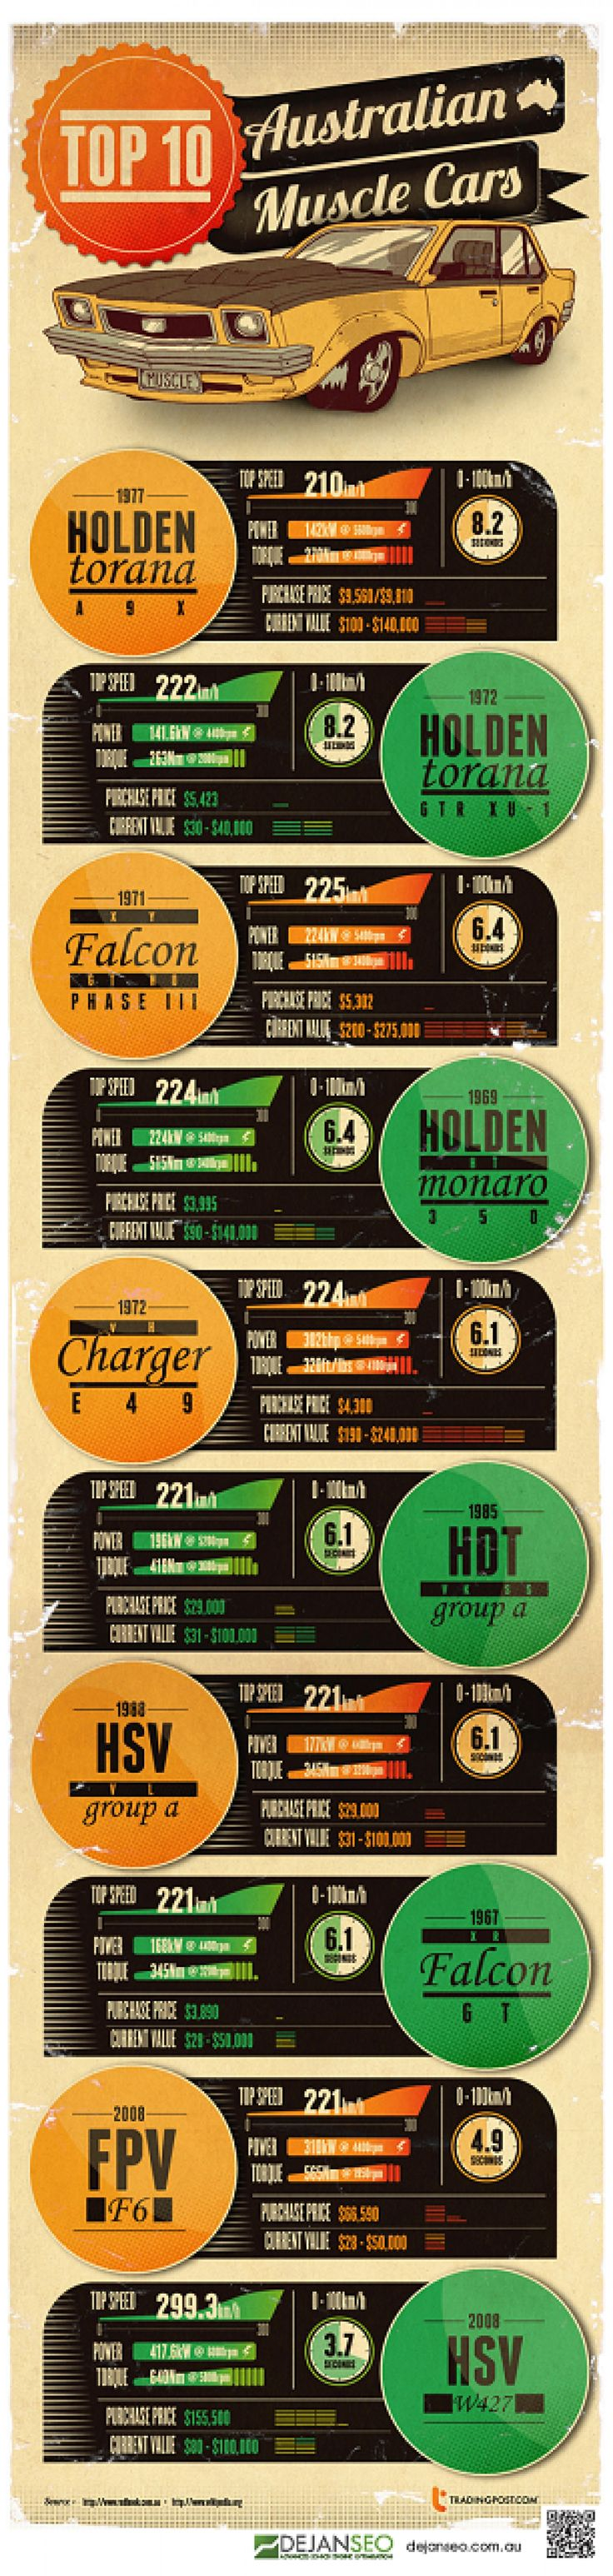 Top 10 Australian Muscle Cars Infographic